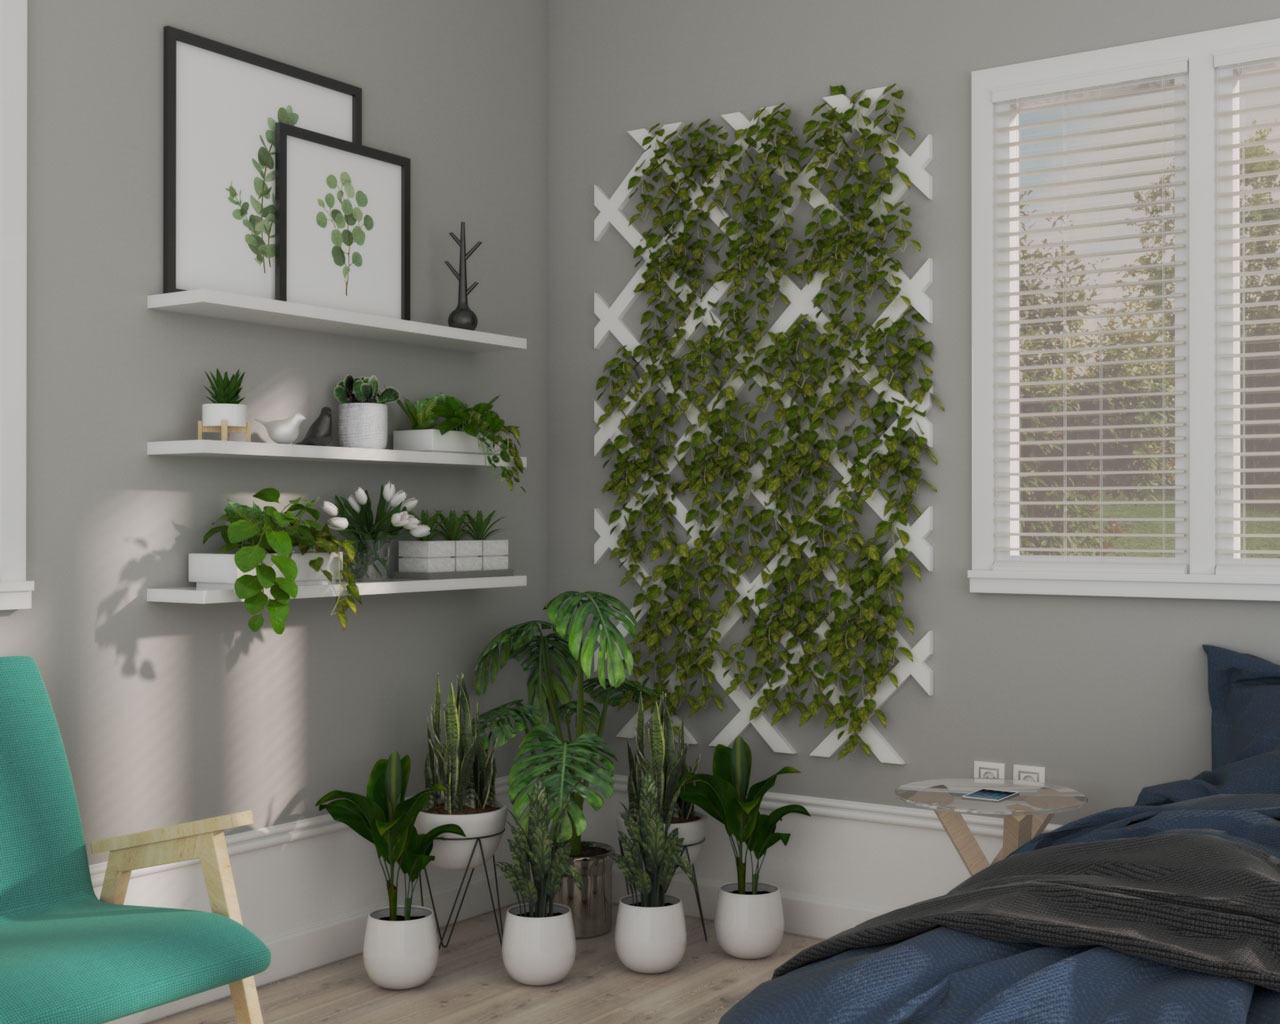 Eco Friendly Bedroom Corner Ideas using Plants and Vegetation